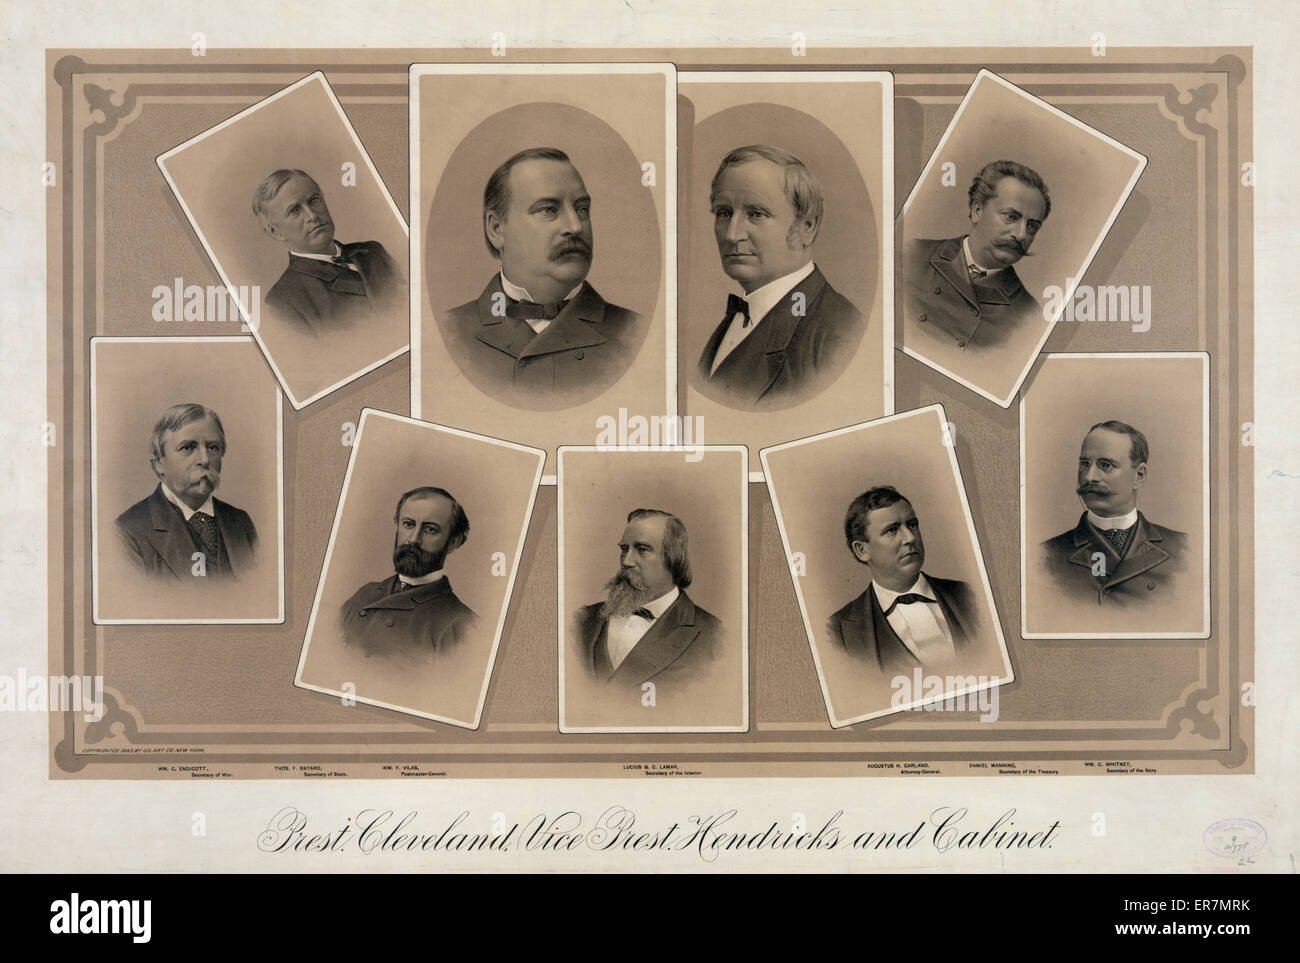 Prest. Cleveland, Vice Prest. Hendricks and cabinet. Date 1885 Jul. 9. - Stock Image